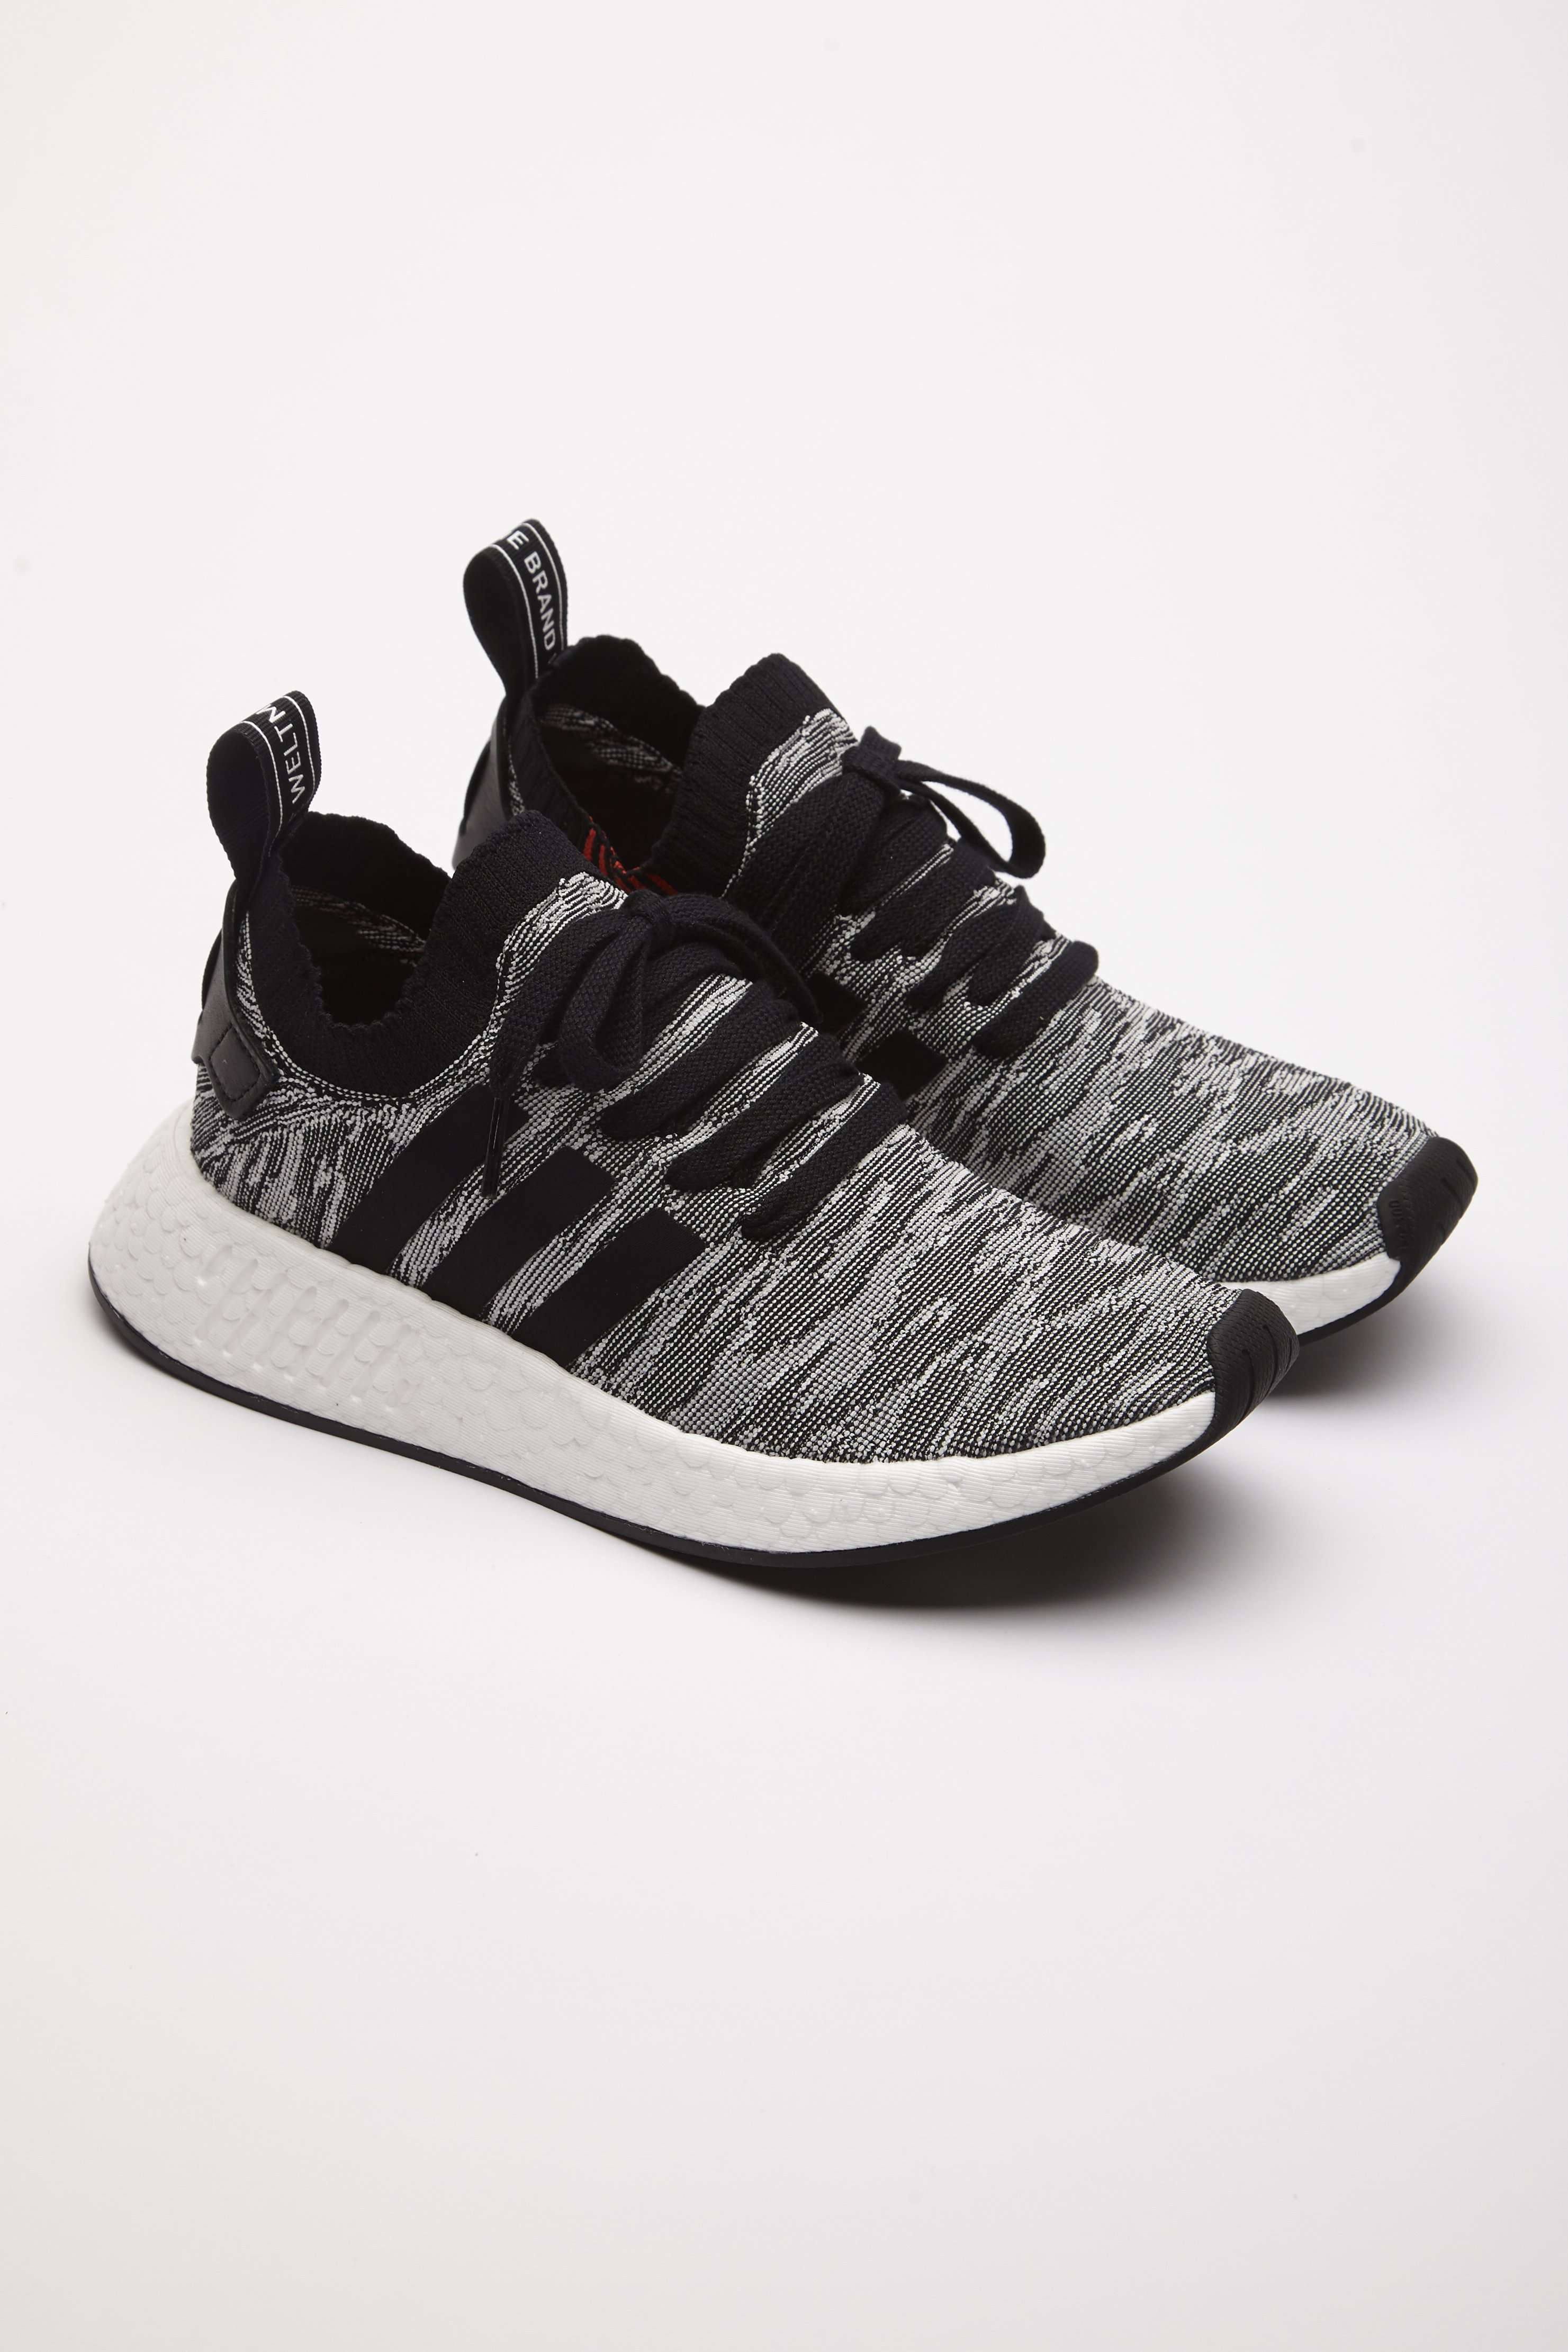 Image of   Adidas NMD_R2 PK - Sort - Sort 38